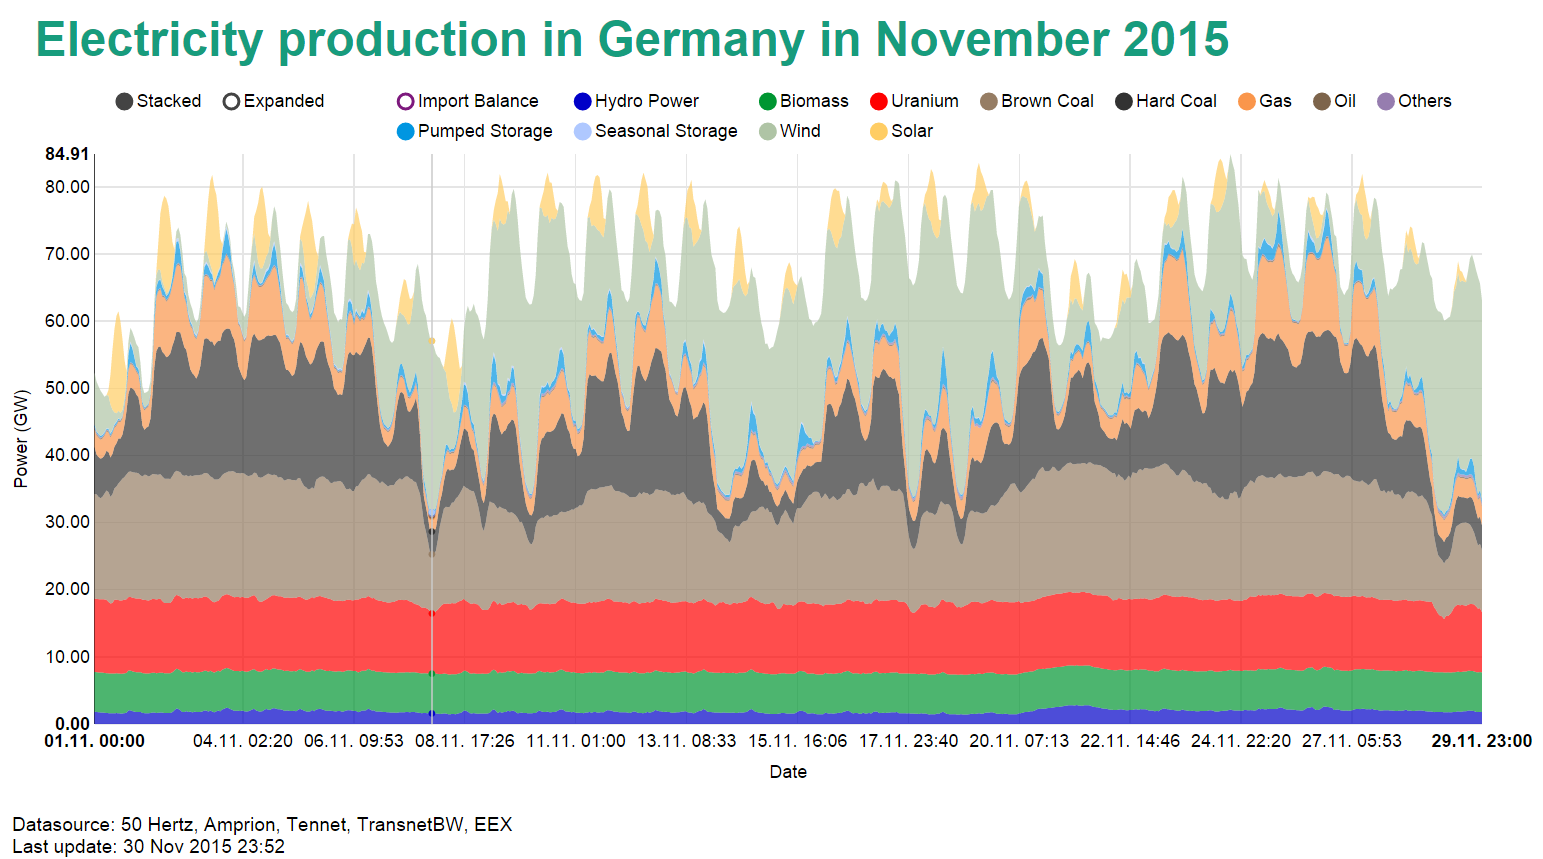 Electricity production in Germany in November 2015